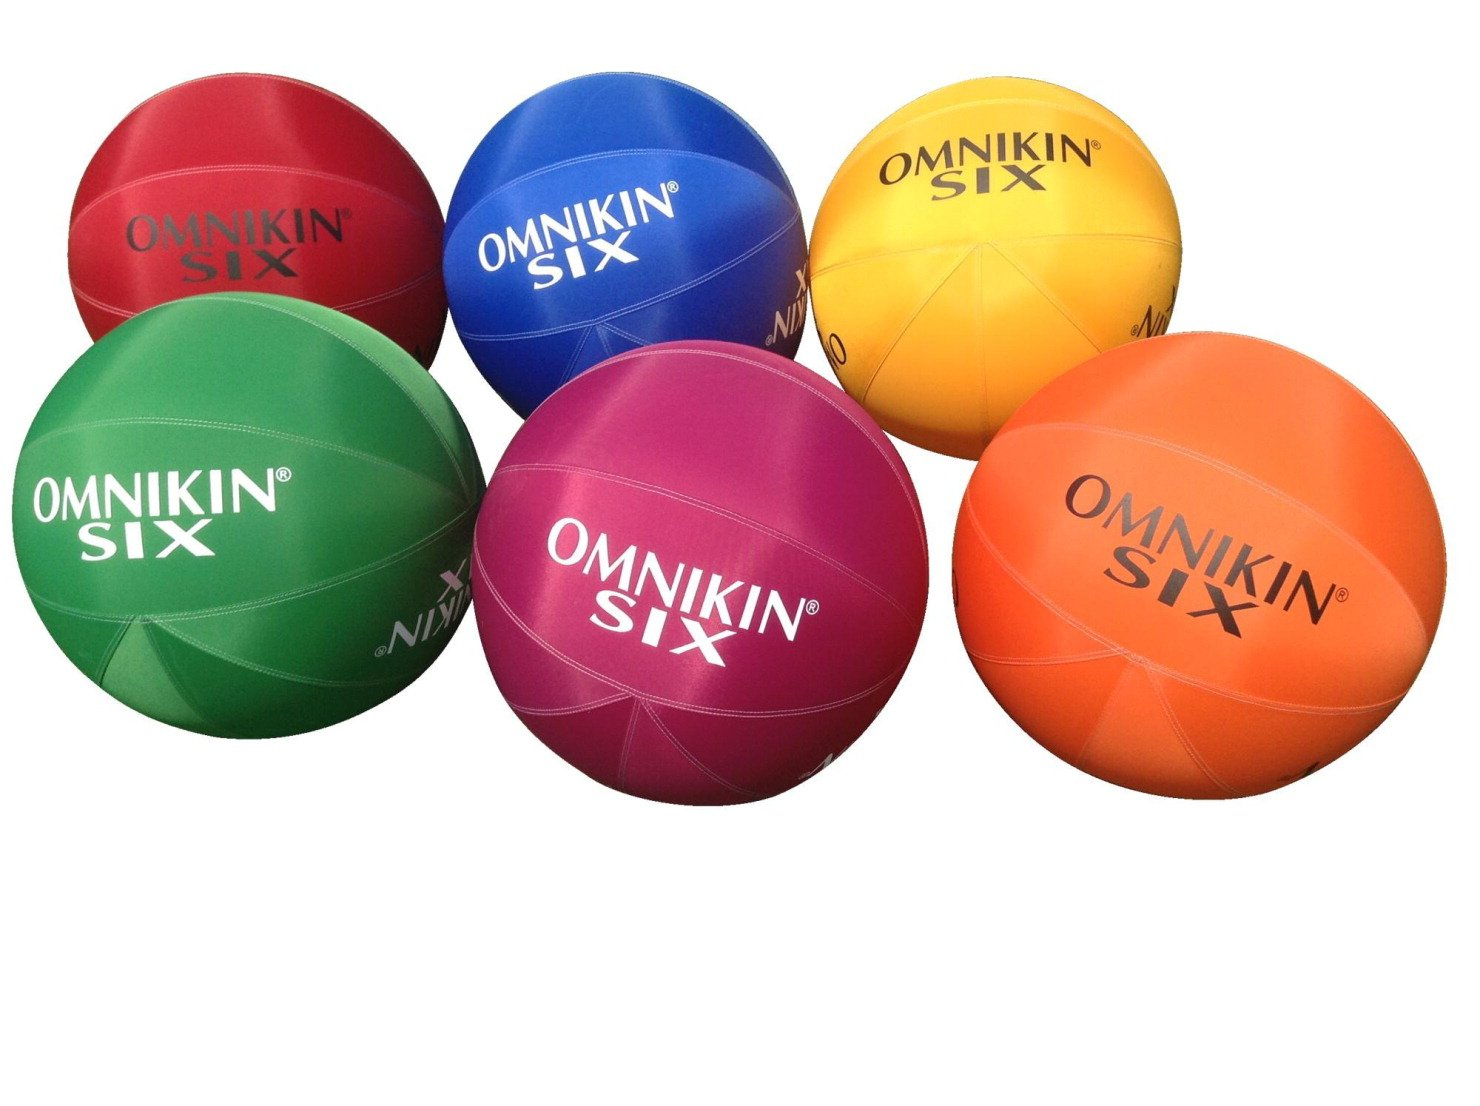 OMNIKIN 18 in SIX balls, Set of 6 by OMNIKIN